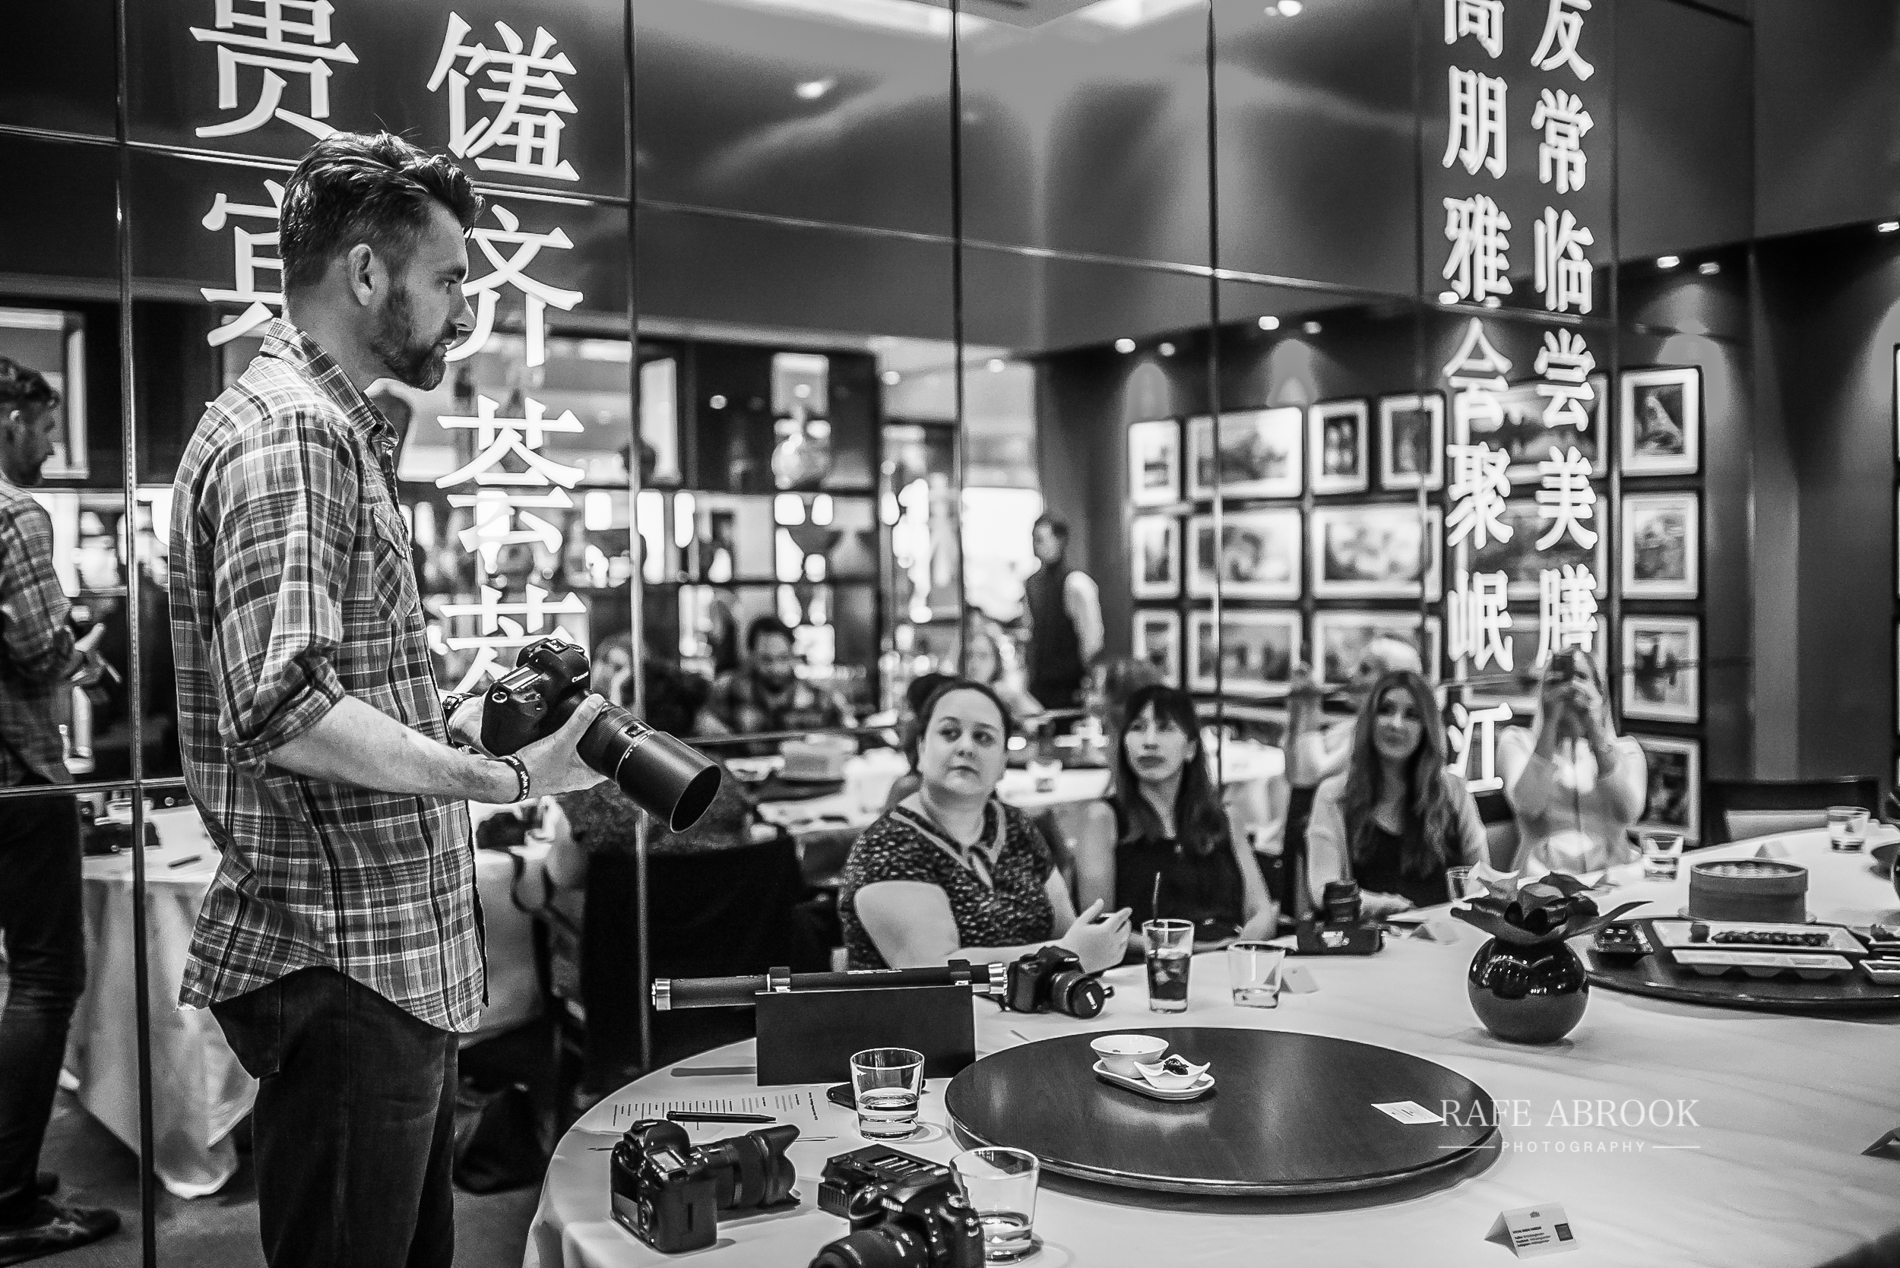 min jiang food blogger rafe abrook photography training-1052.jpg